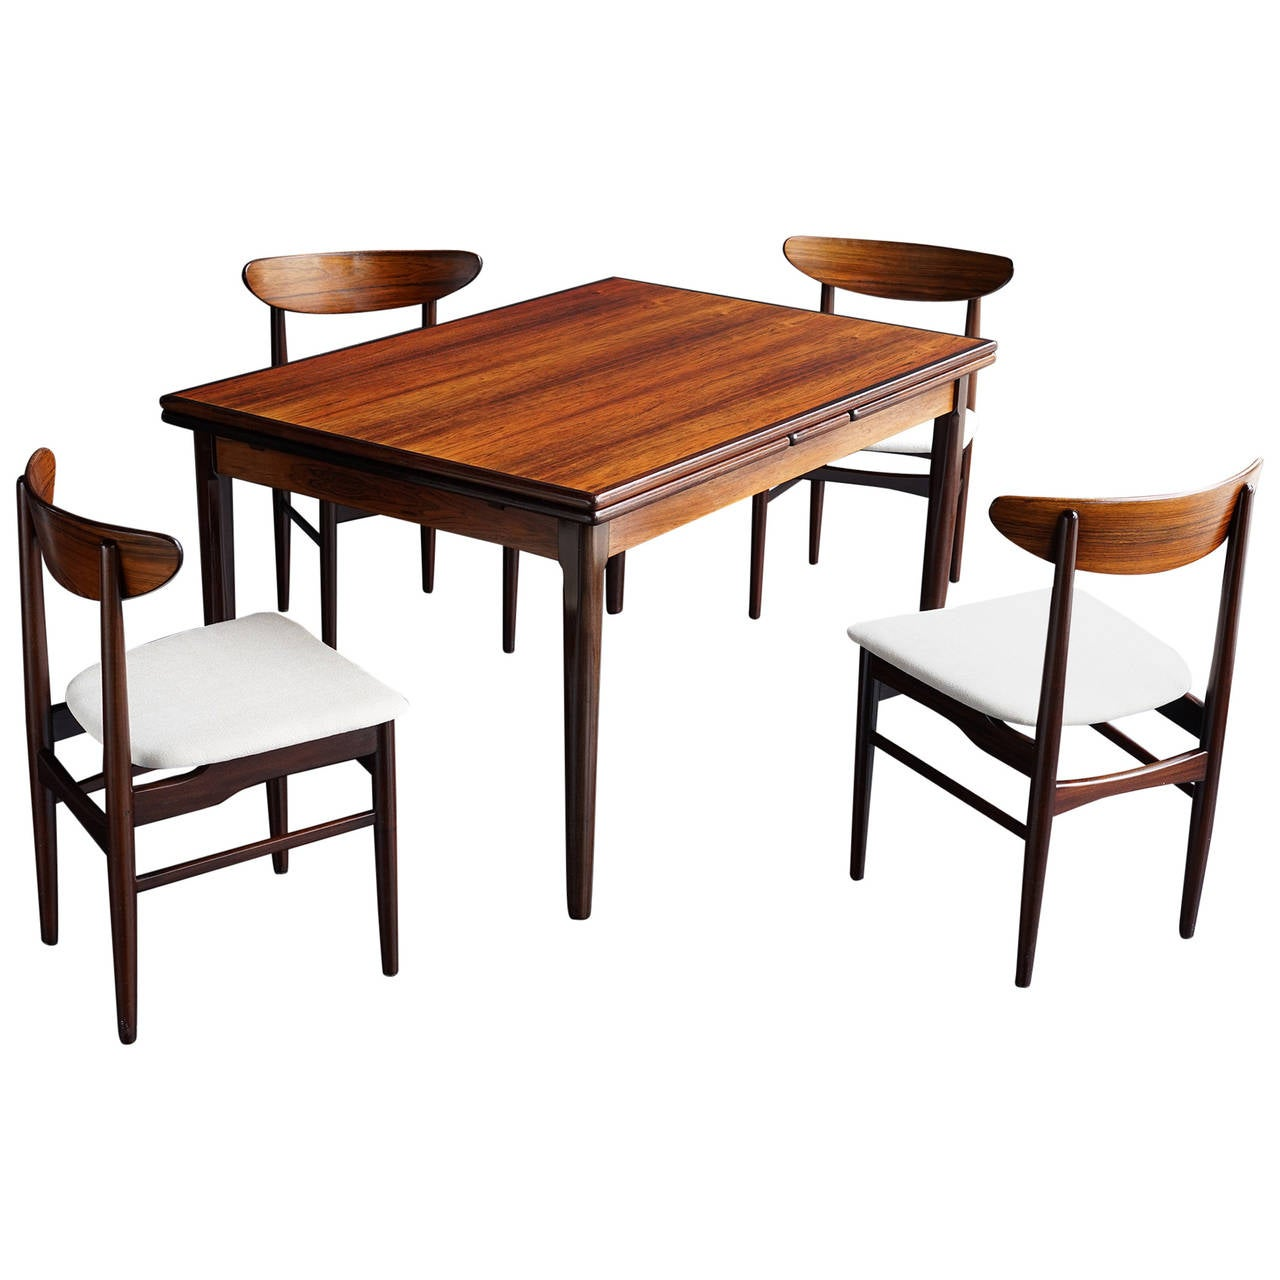 Danish modern rosewood dining set at 1stdibs for Dining room tables 1940s